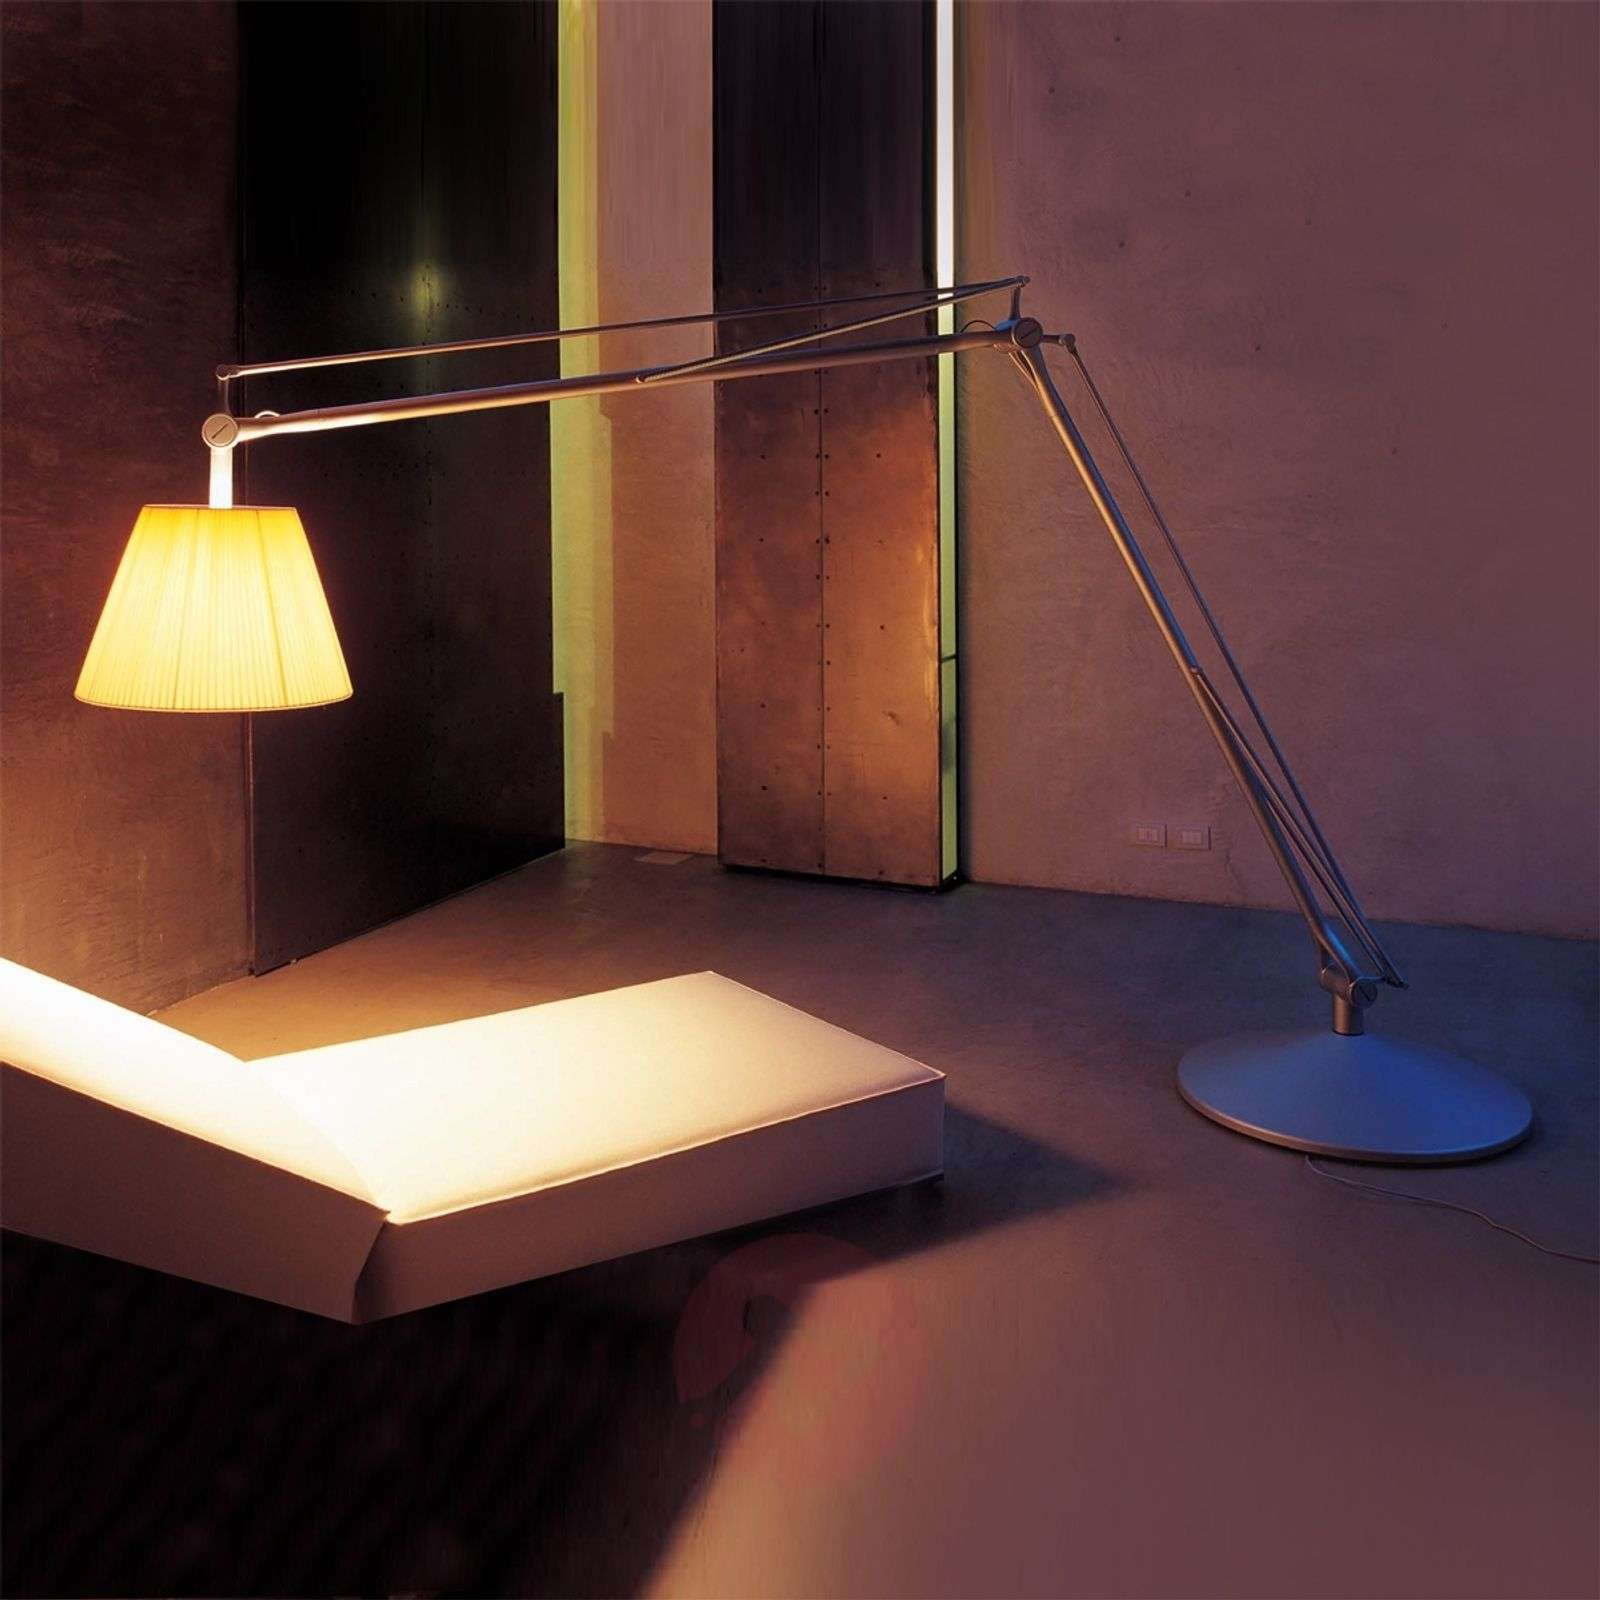 Superarchimoon floor lamp large dimensions lights superarchimoon floor lamp large dimensions 3510151 01 aloadofball Image collections